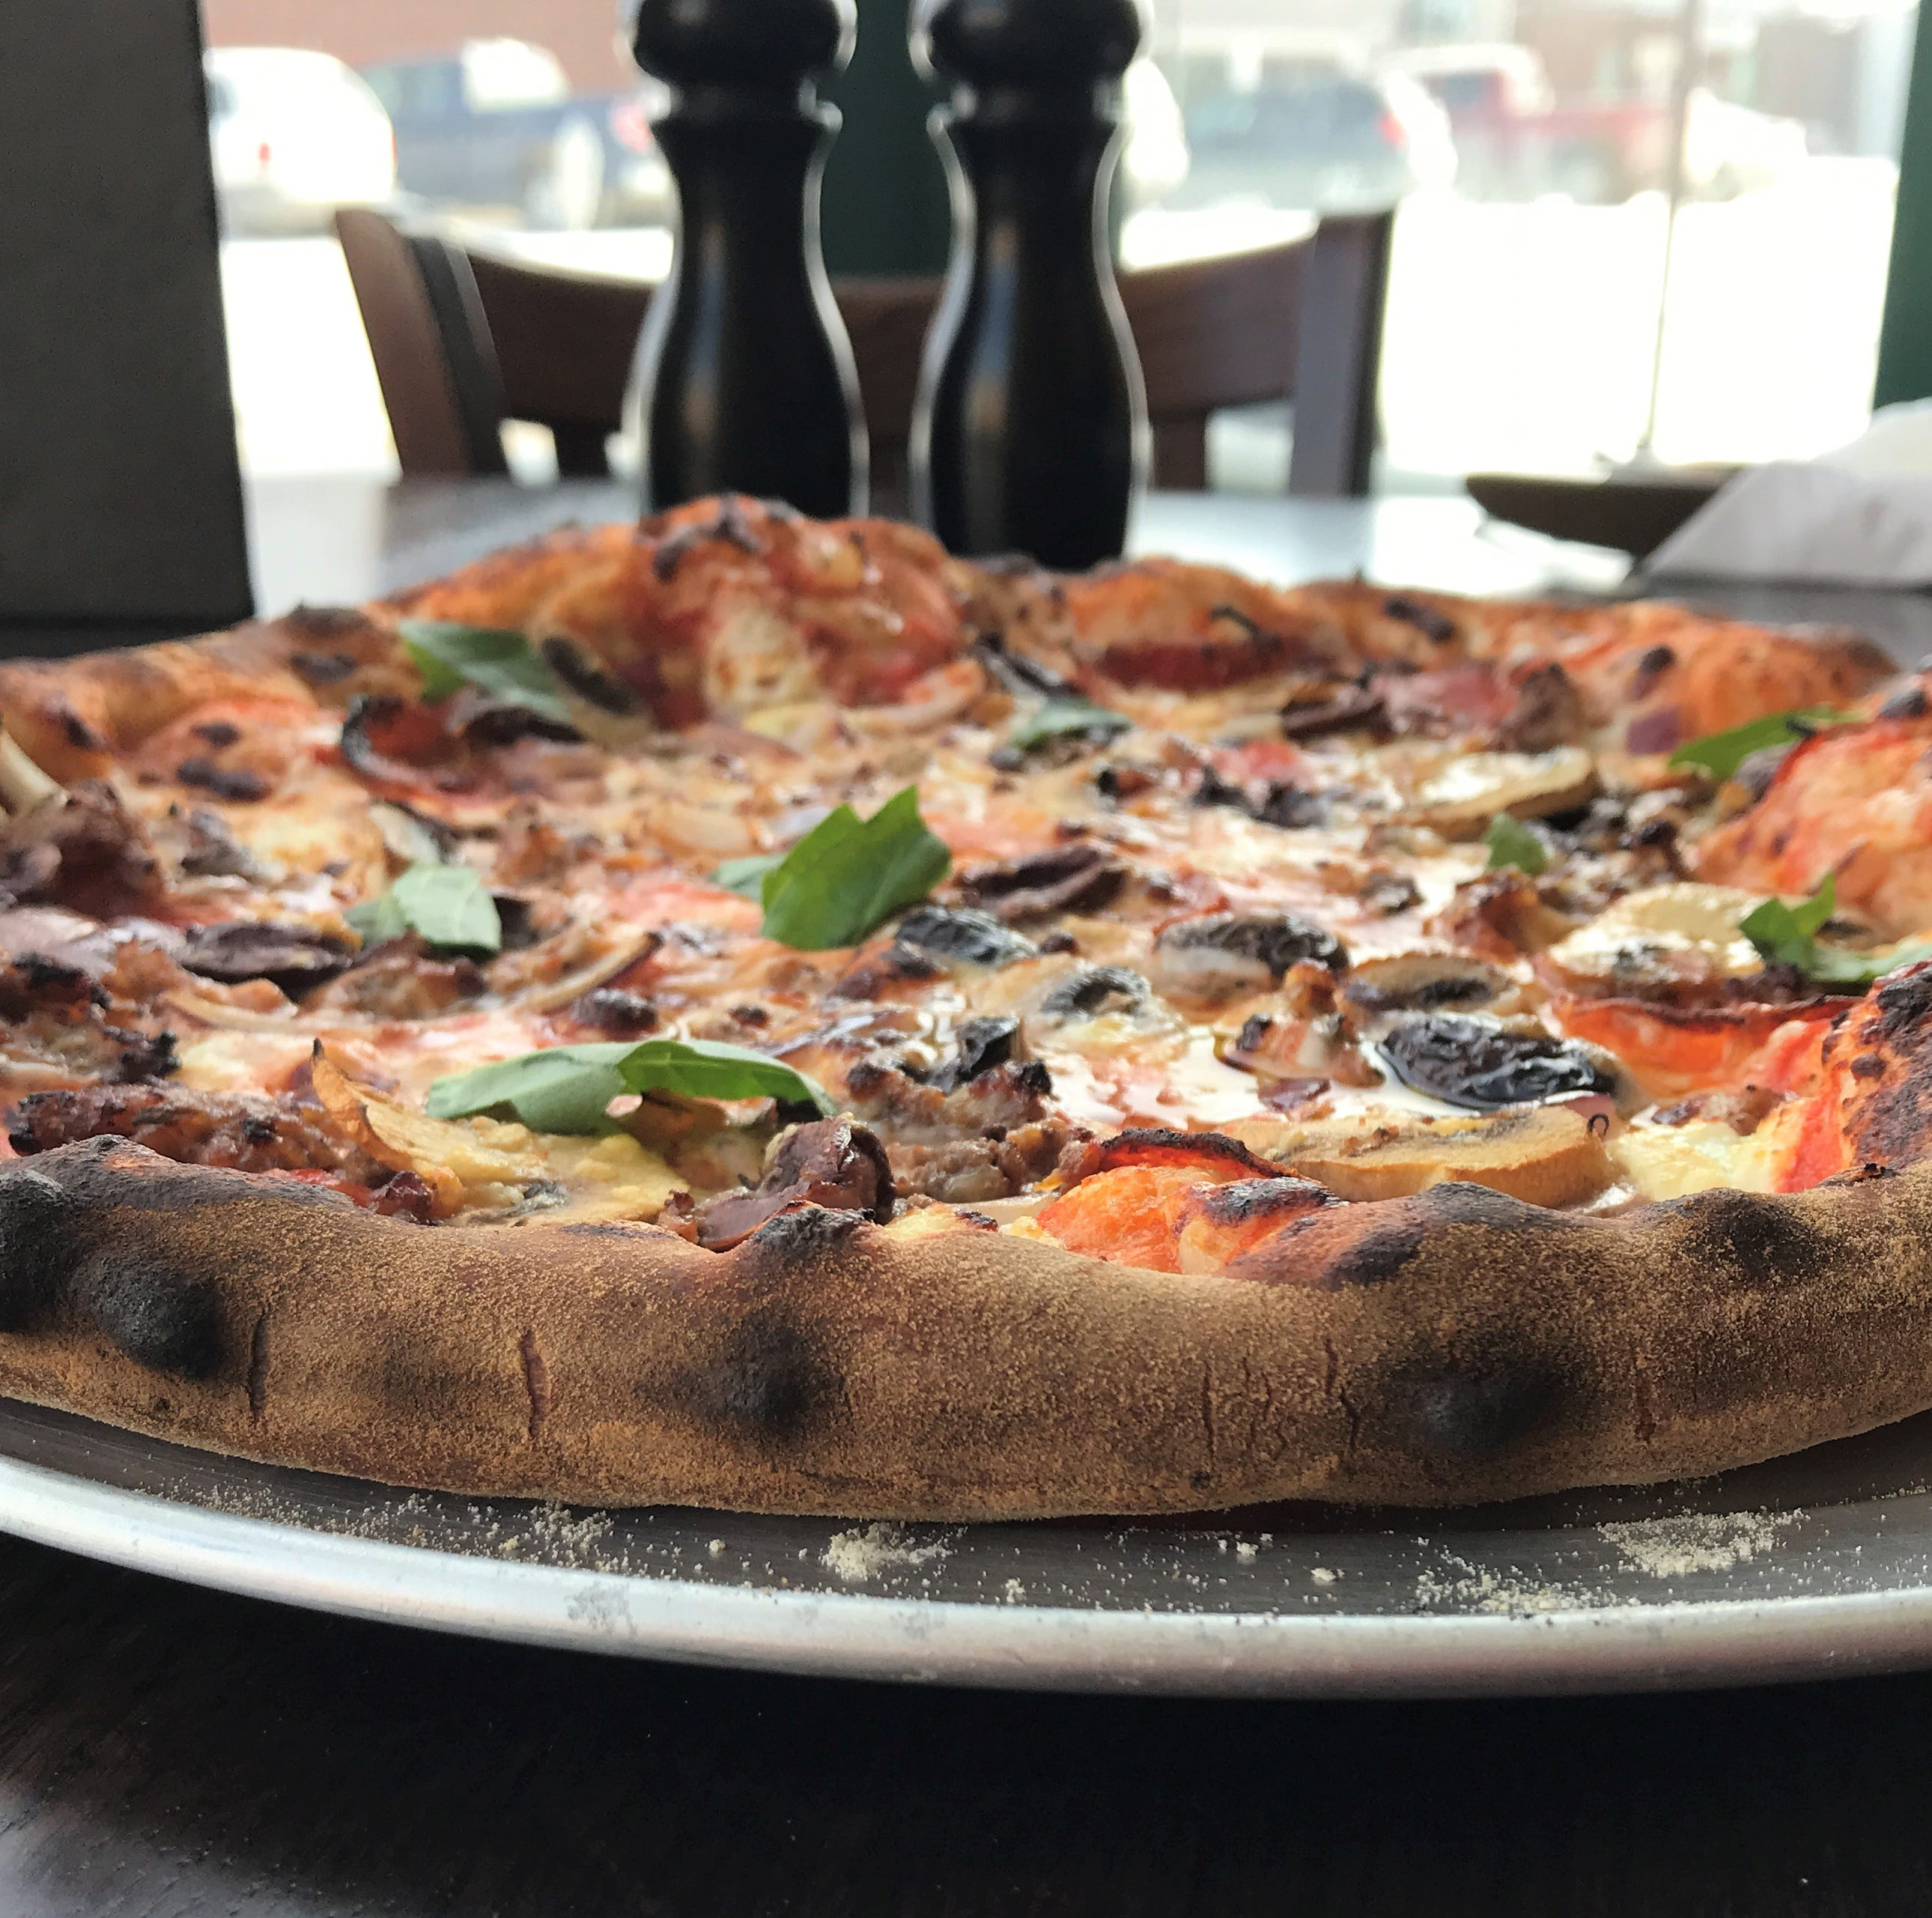 A new pizza restaurant is now open in the historic Bricker-Price Block in Earlham